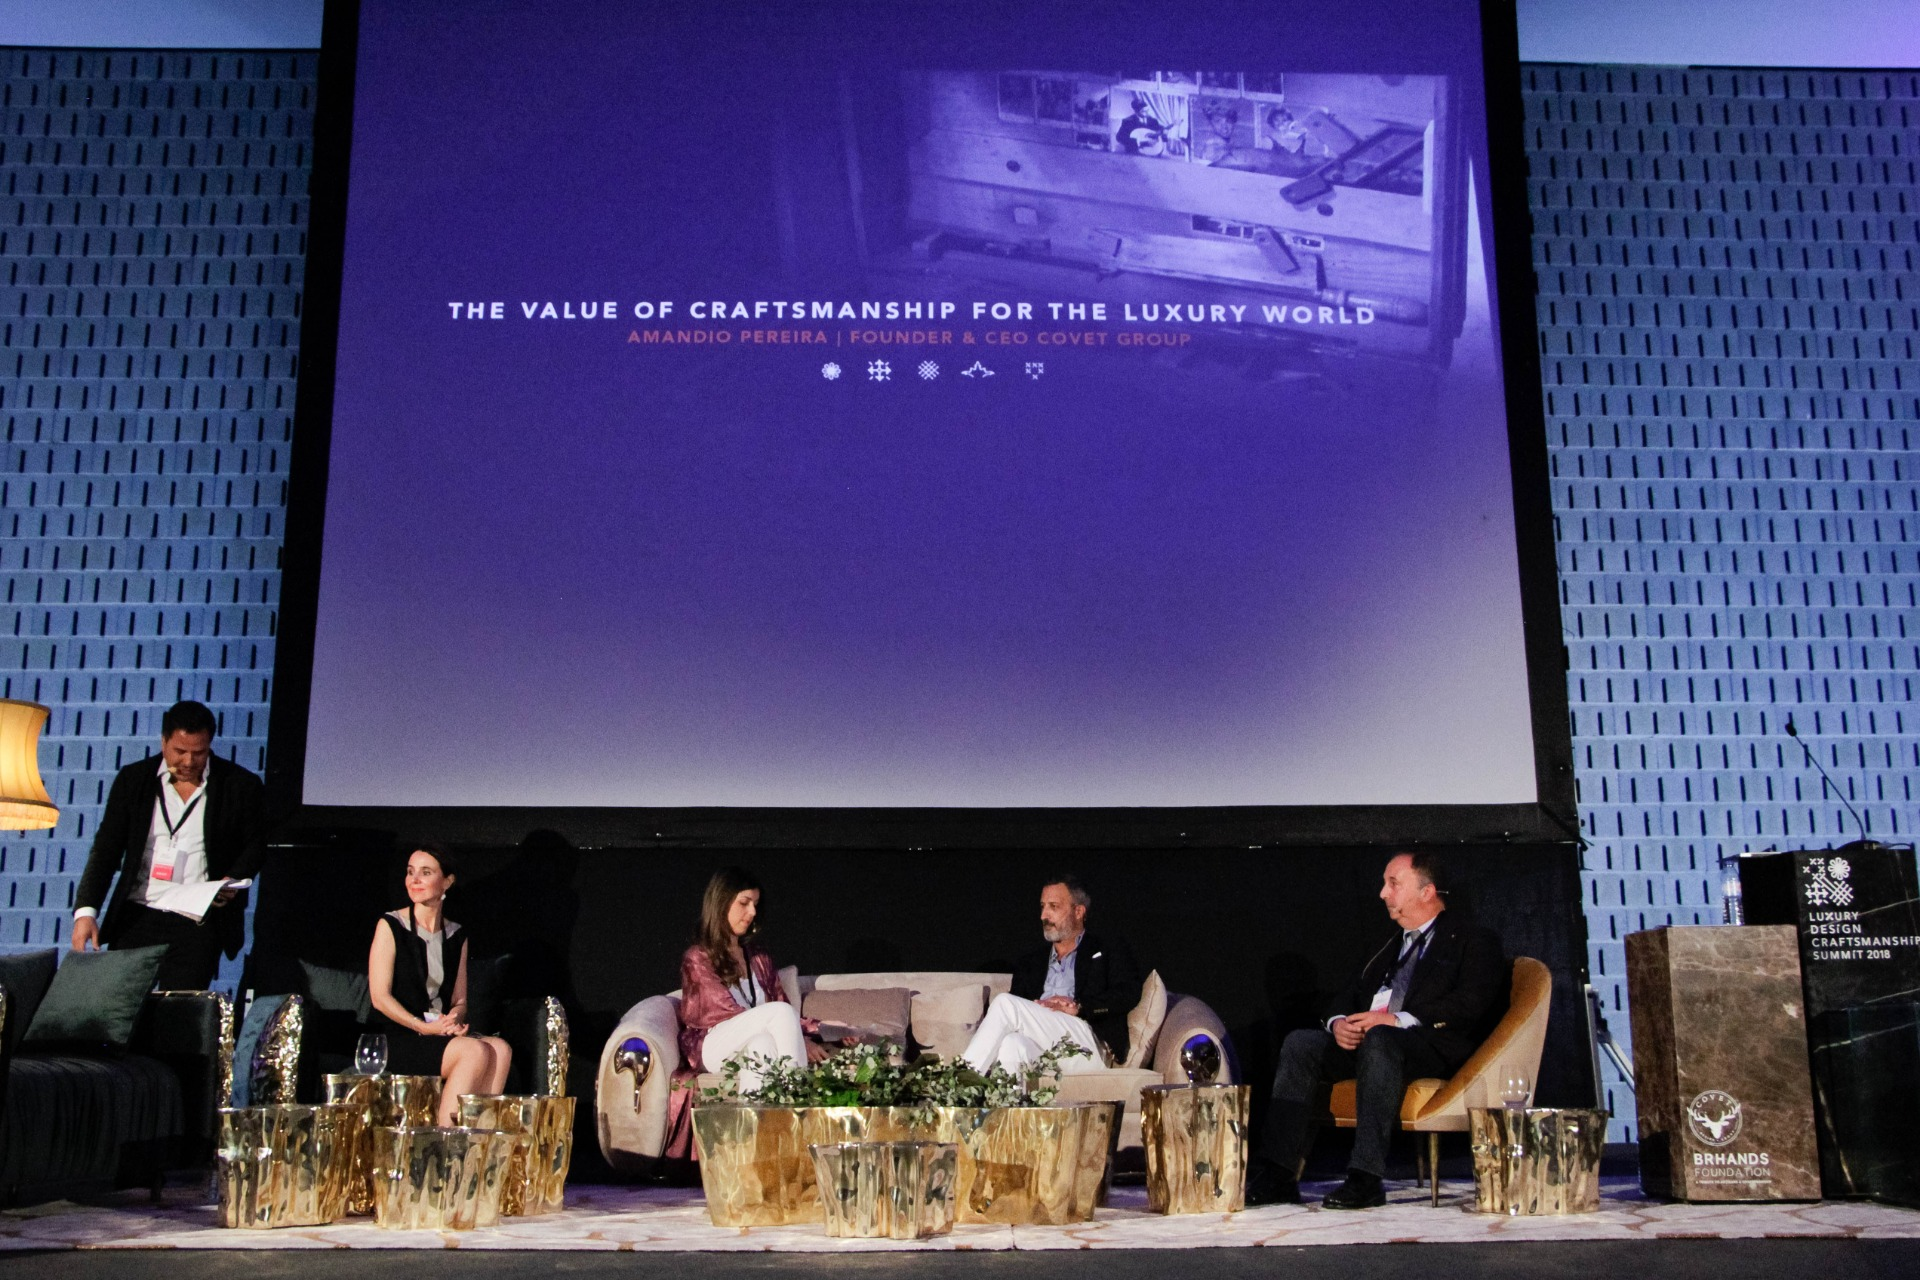 Celebrating Craftsmanship The Luxury Design+Craftsmanship Summit 2019 (5) luxury design Celebrating Craftsmanship: The Luxury Design+Craftsmanship Summit 2019 Celebrating Craftsmanship The Luxury DesignCraftsmanship Summit 2019 5